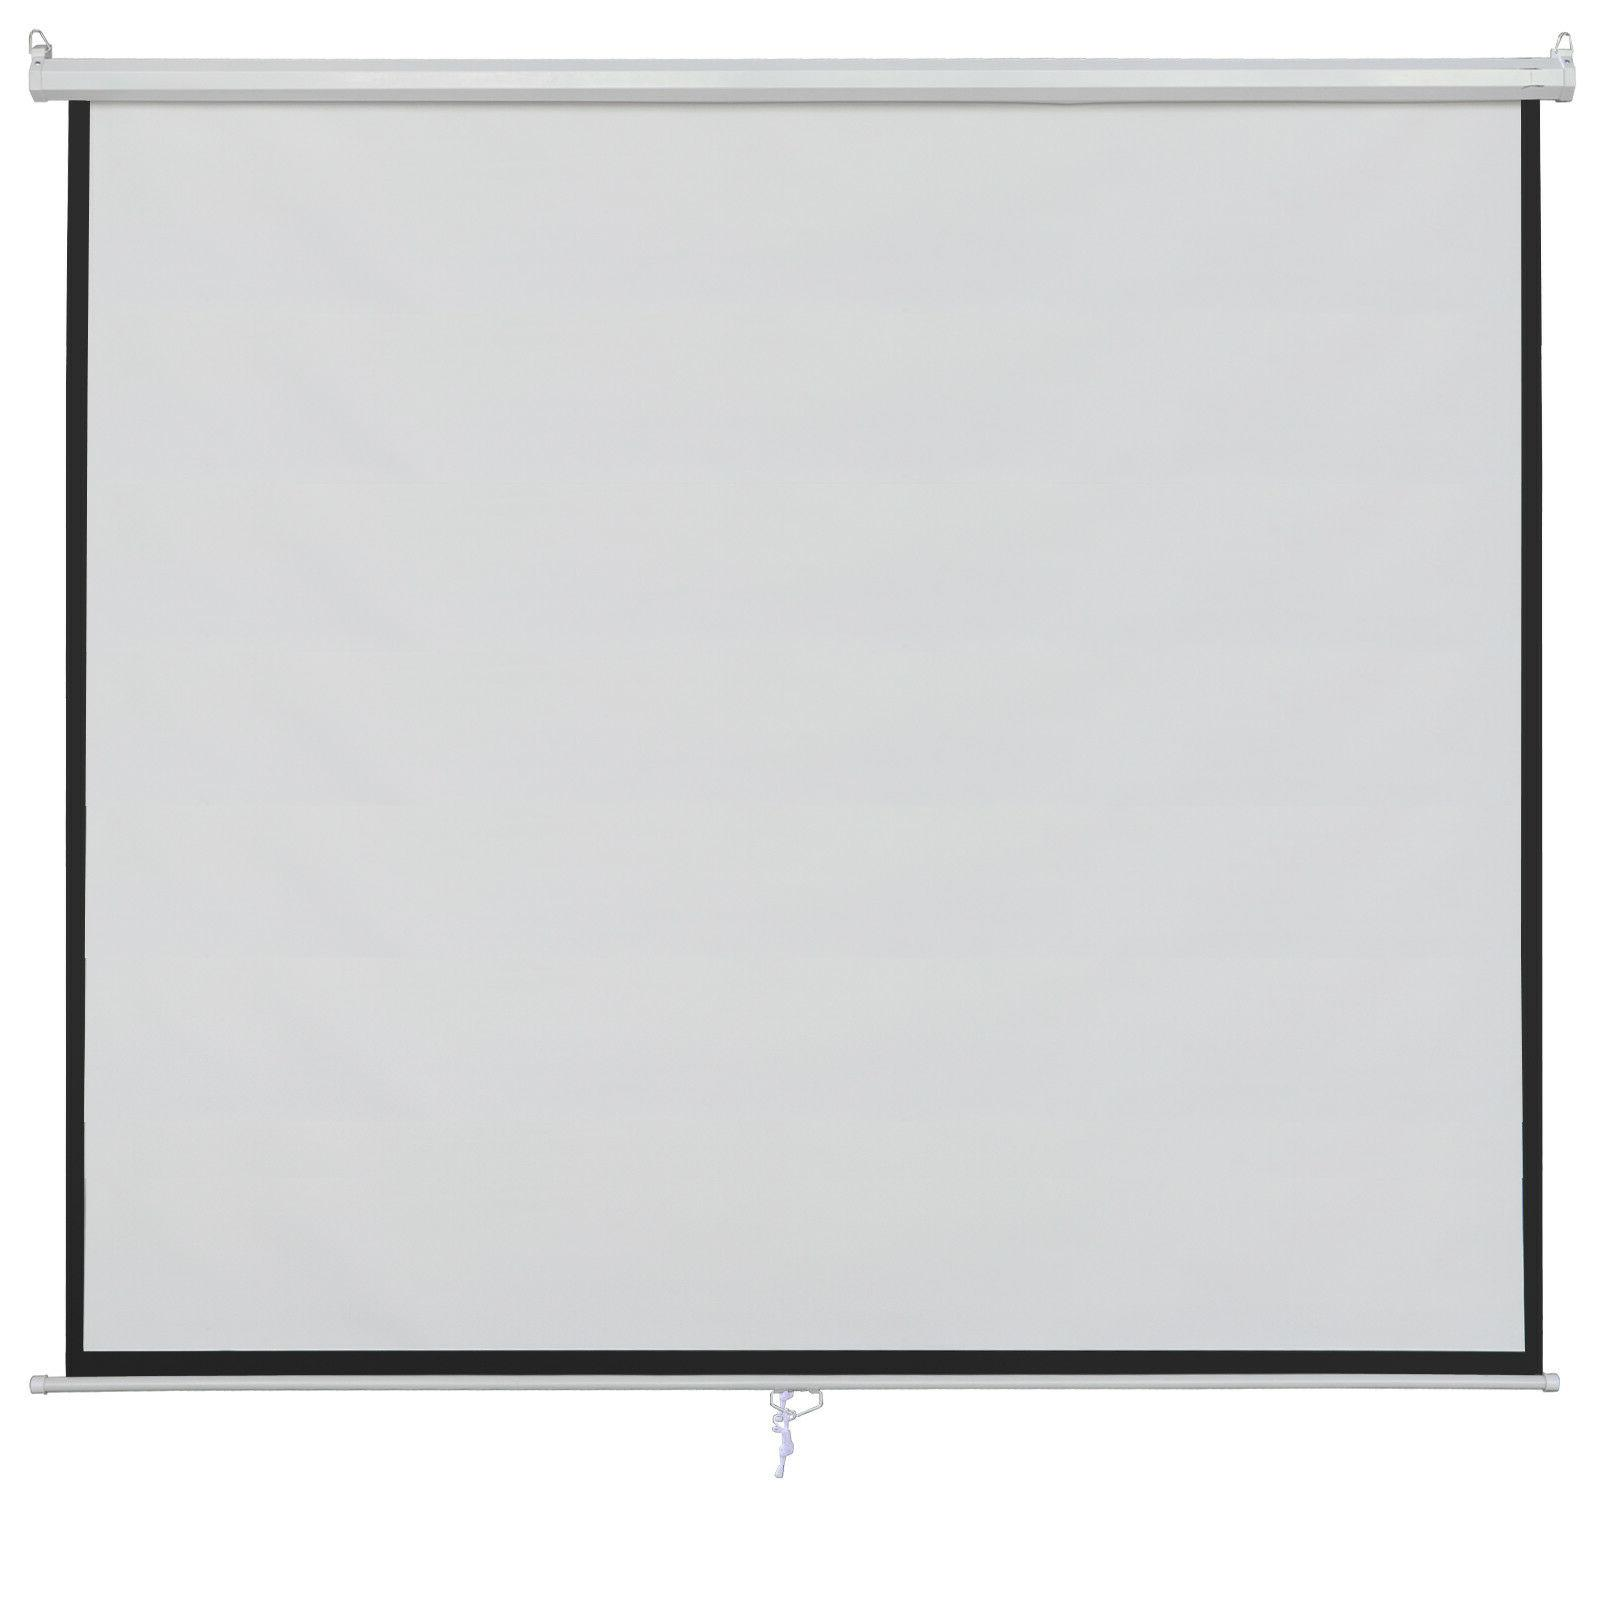 100 Inch 16:9 Manual Pull Down Projector Projection Screen f